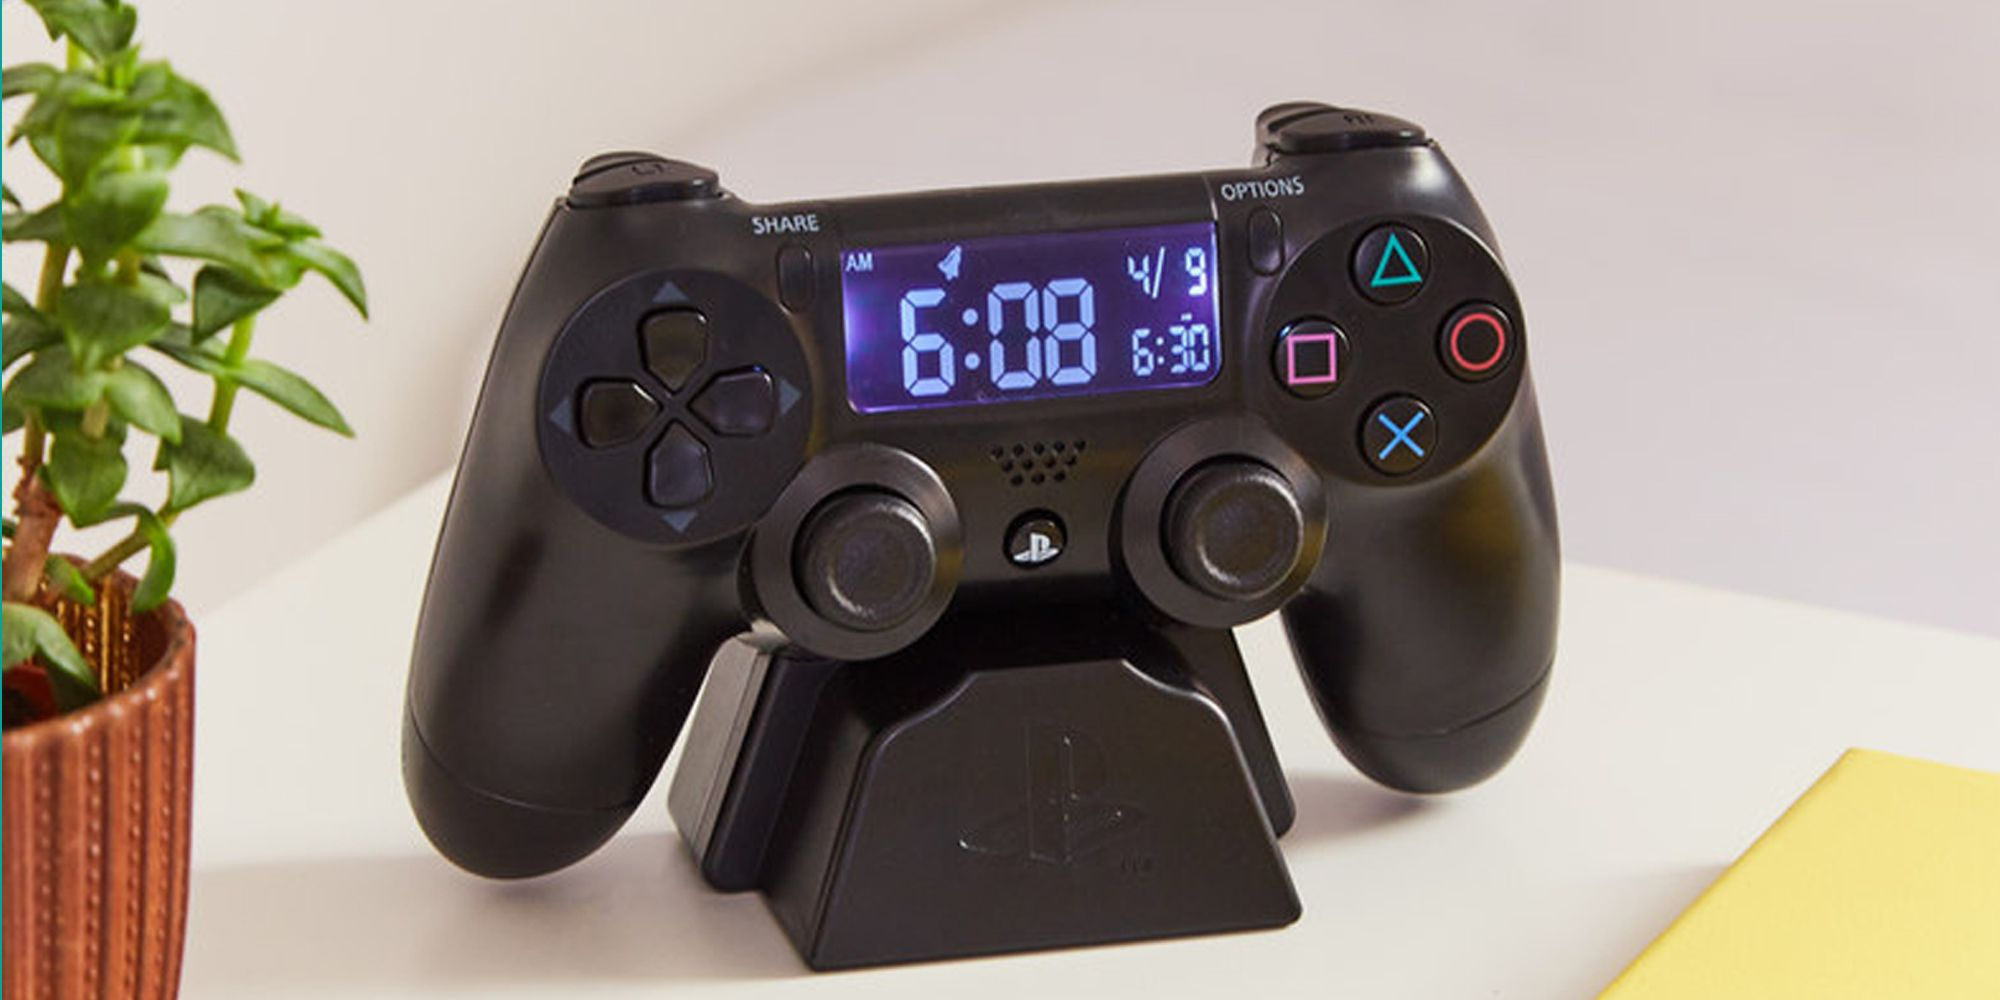 This PlayStation Alarm Clock Is the Motivation You Need in the Morning